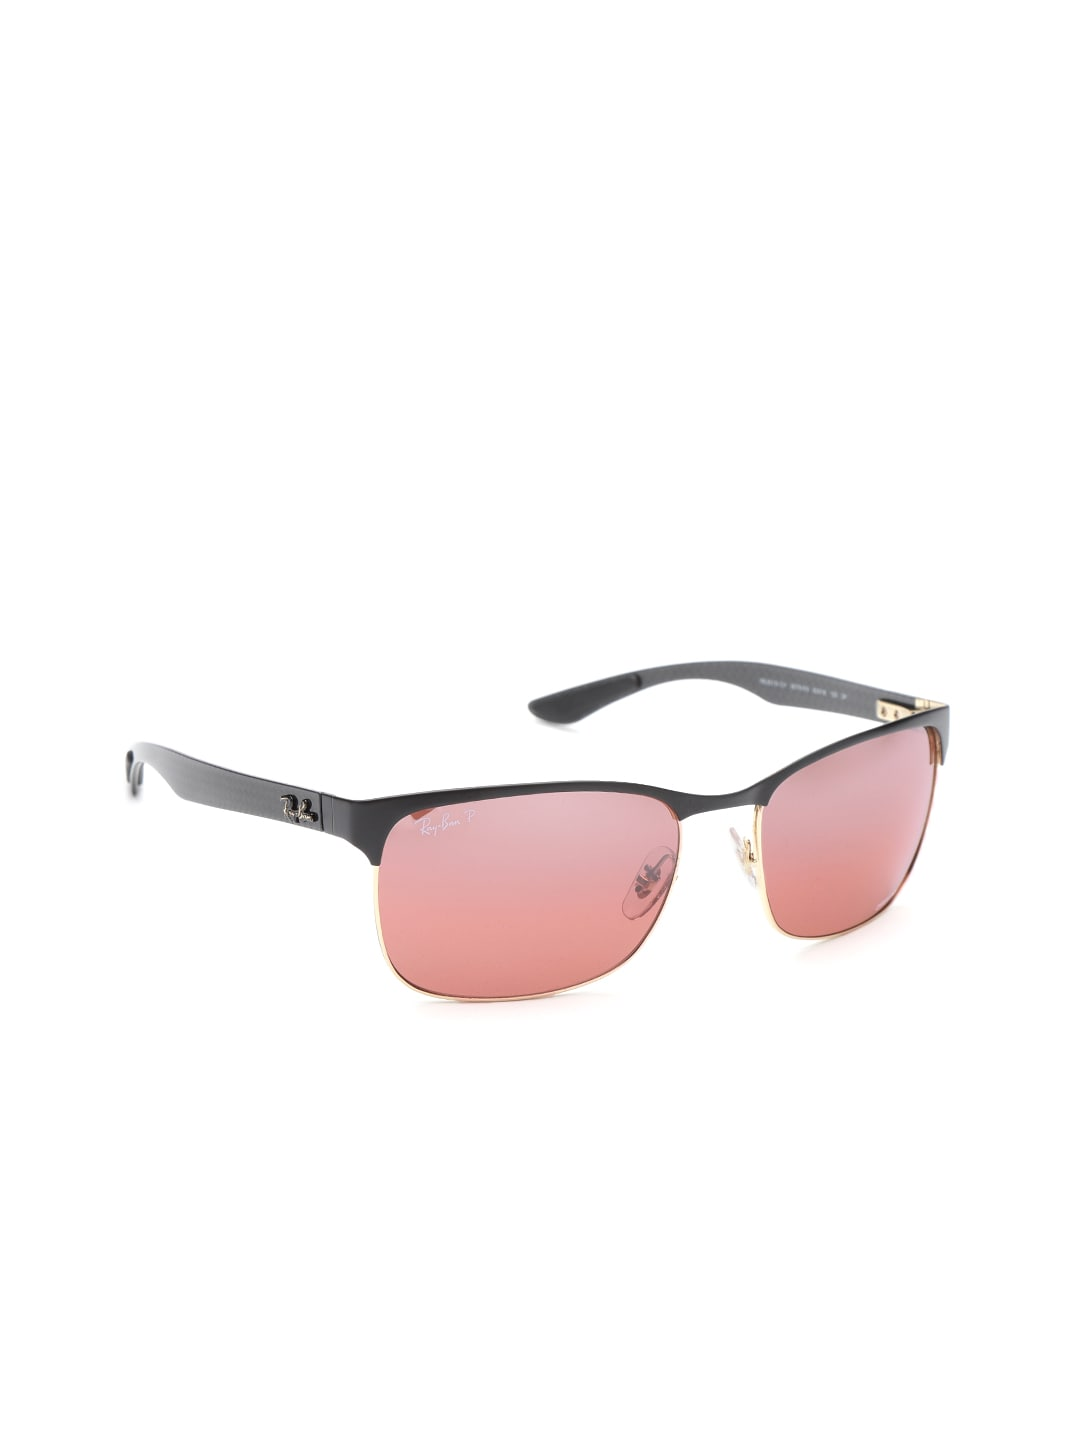 c29420d94f2 Buy Ray Ban Men Mirrored Clubmaster Sunglasses 0RB3016 114517 ...